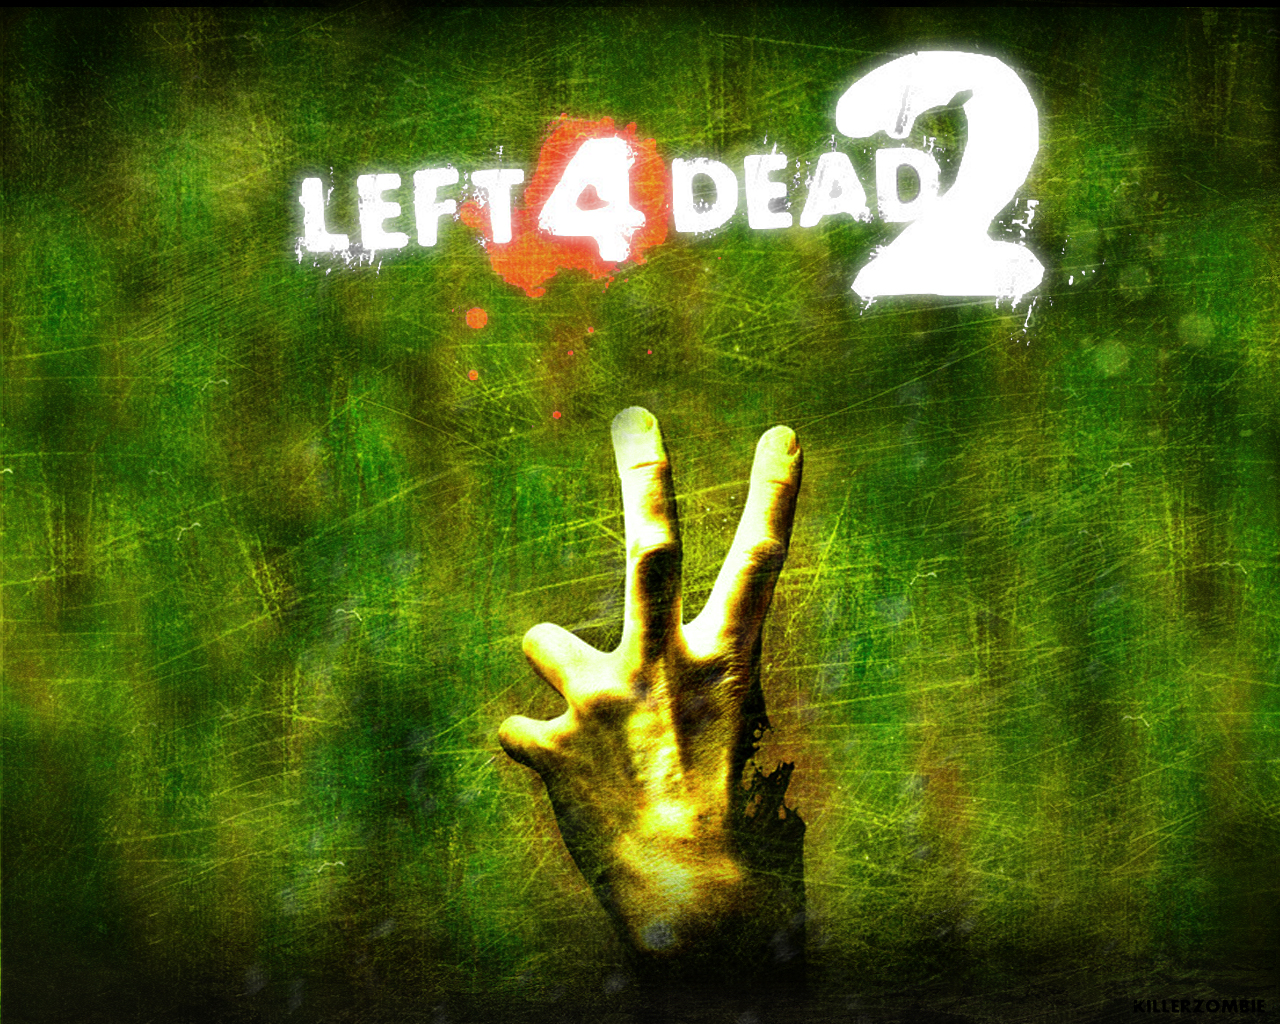 Left 4 Dead 2 Wallpaper Video Games Blogger